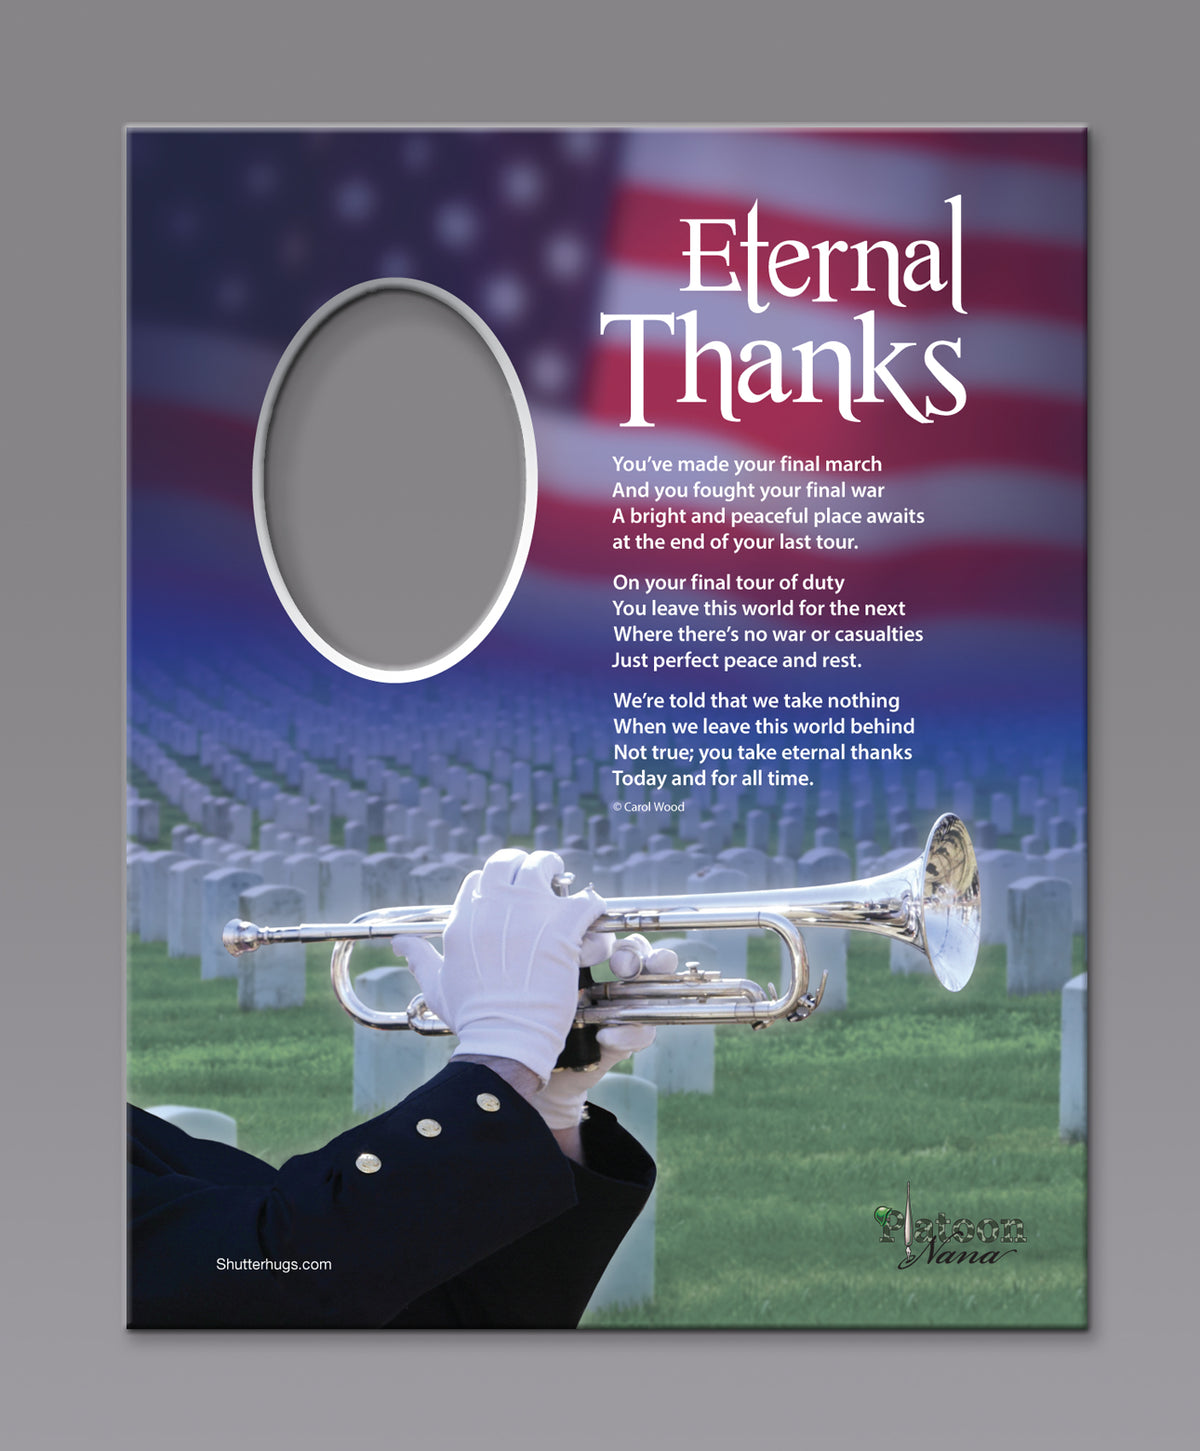 Eternal Thanks